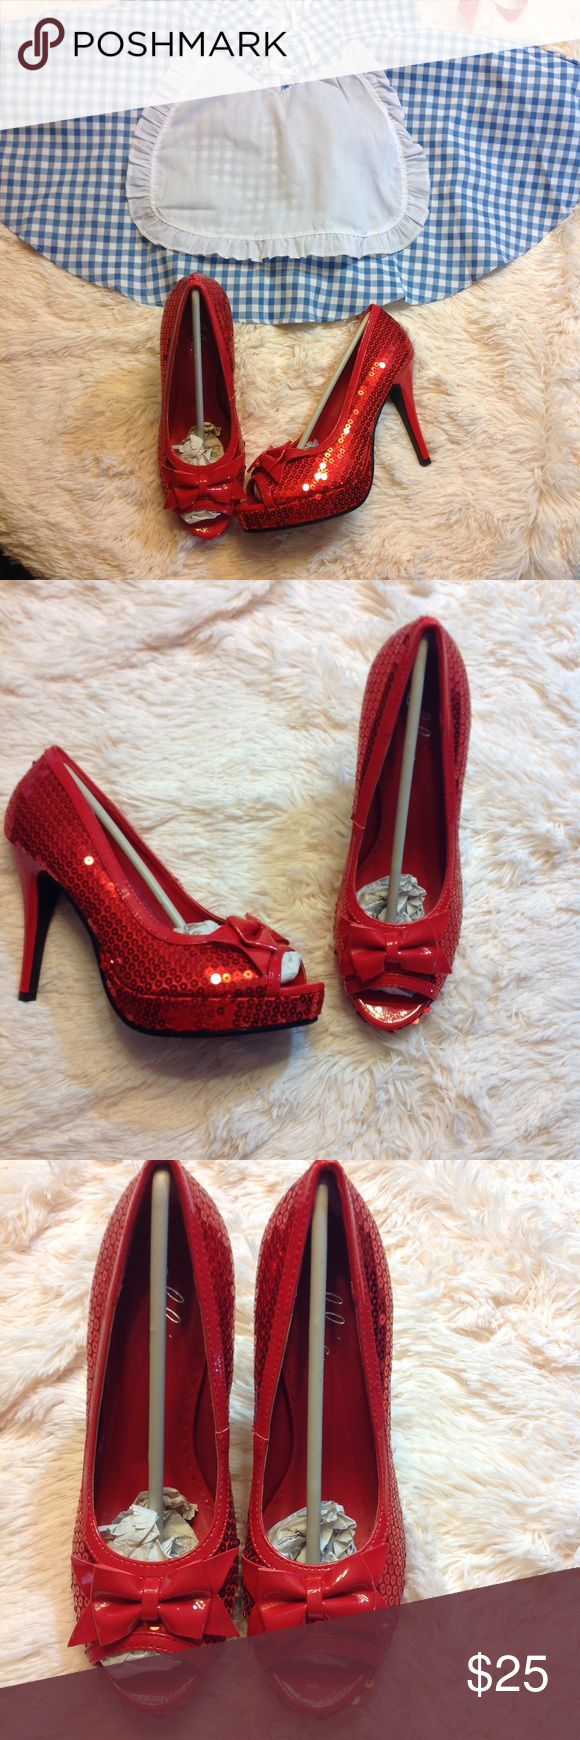 "Red Sequin Peep Toe Pumps Bows Halloween Heels 7 New in box Ellie Halloween Costume heels. Perfect match for Dorothy Wizard of Oz, Betty Boop, Jessica Rabbitt, and more.  Sequins and bow peep toe pumps.  These have 4"" heel and a 1"" platform  Ellie Shoes Shoes Heels"